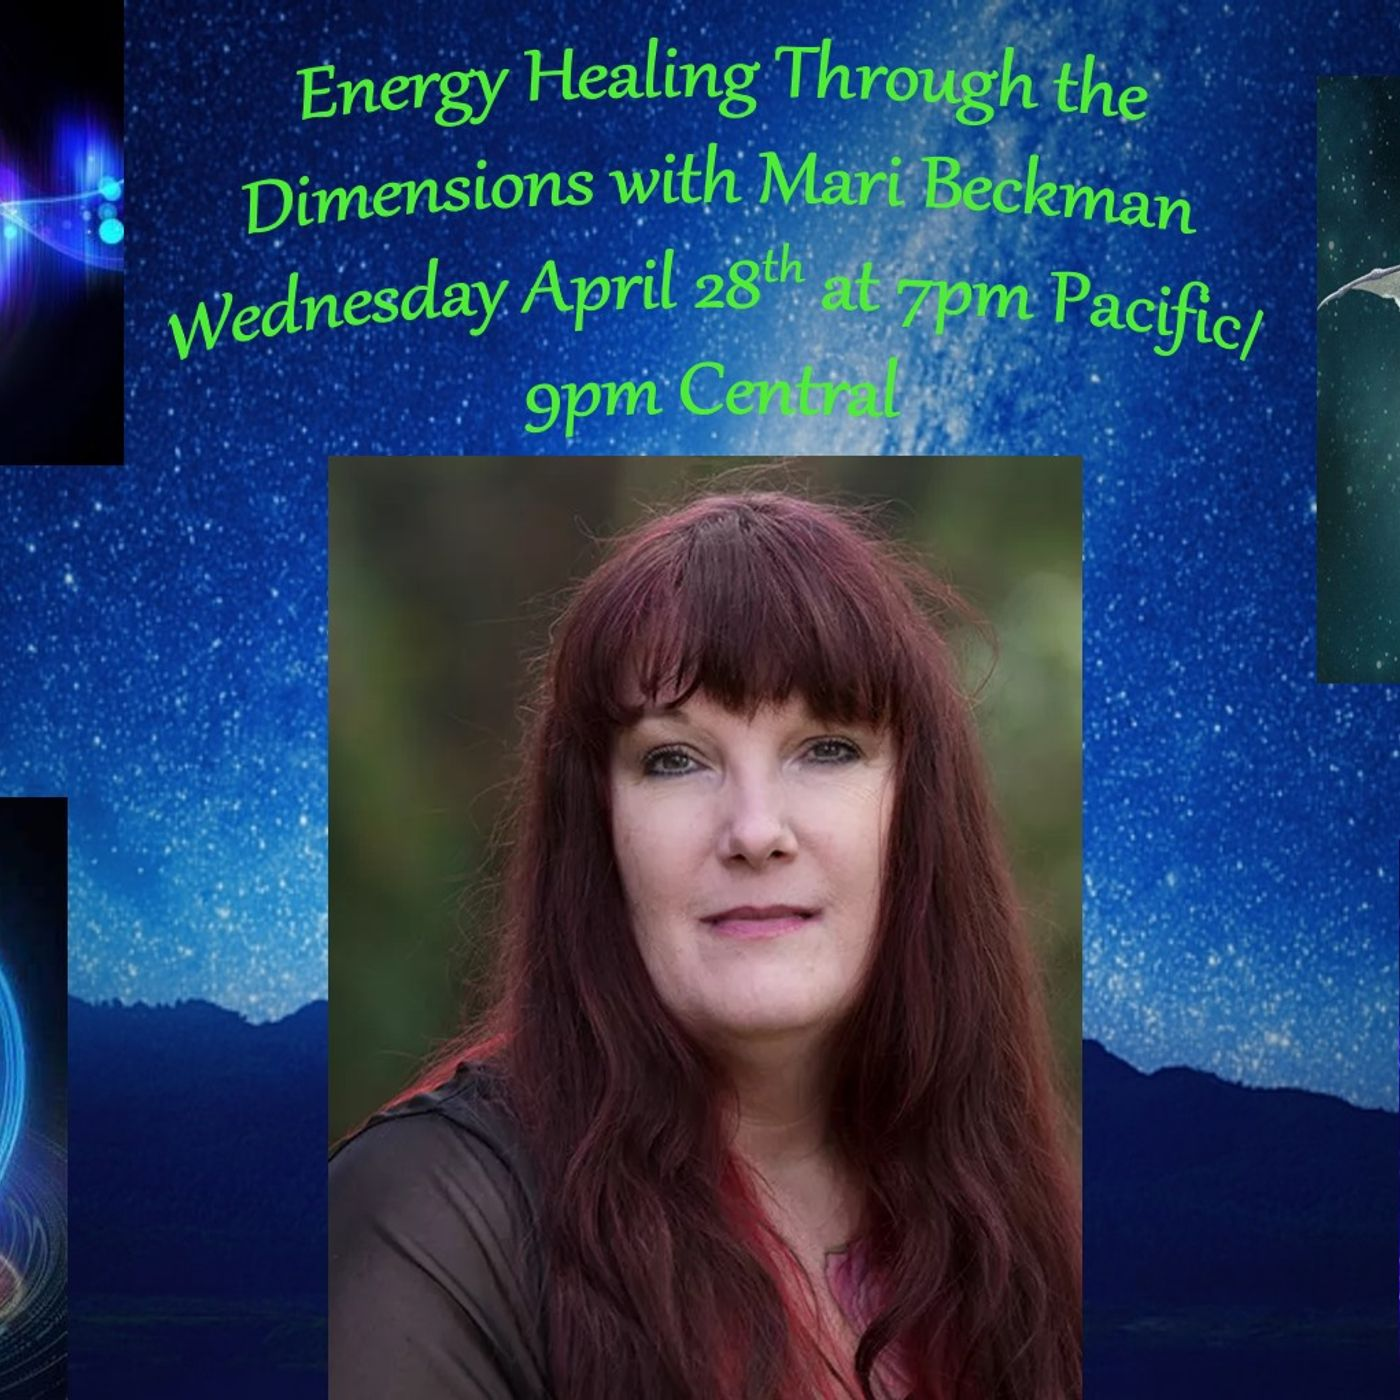 Energy Healing Through the Dimensions with Mari Beckman